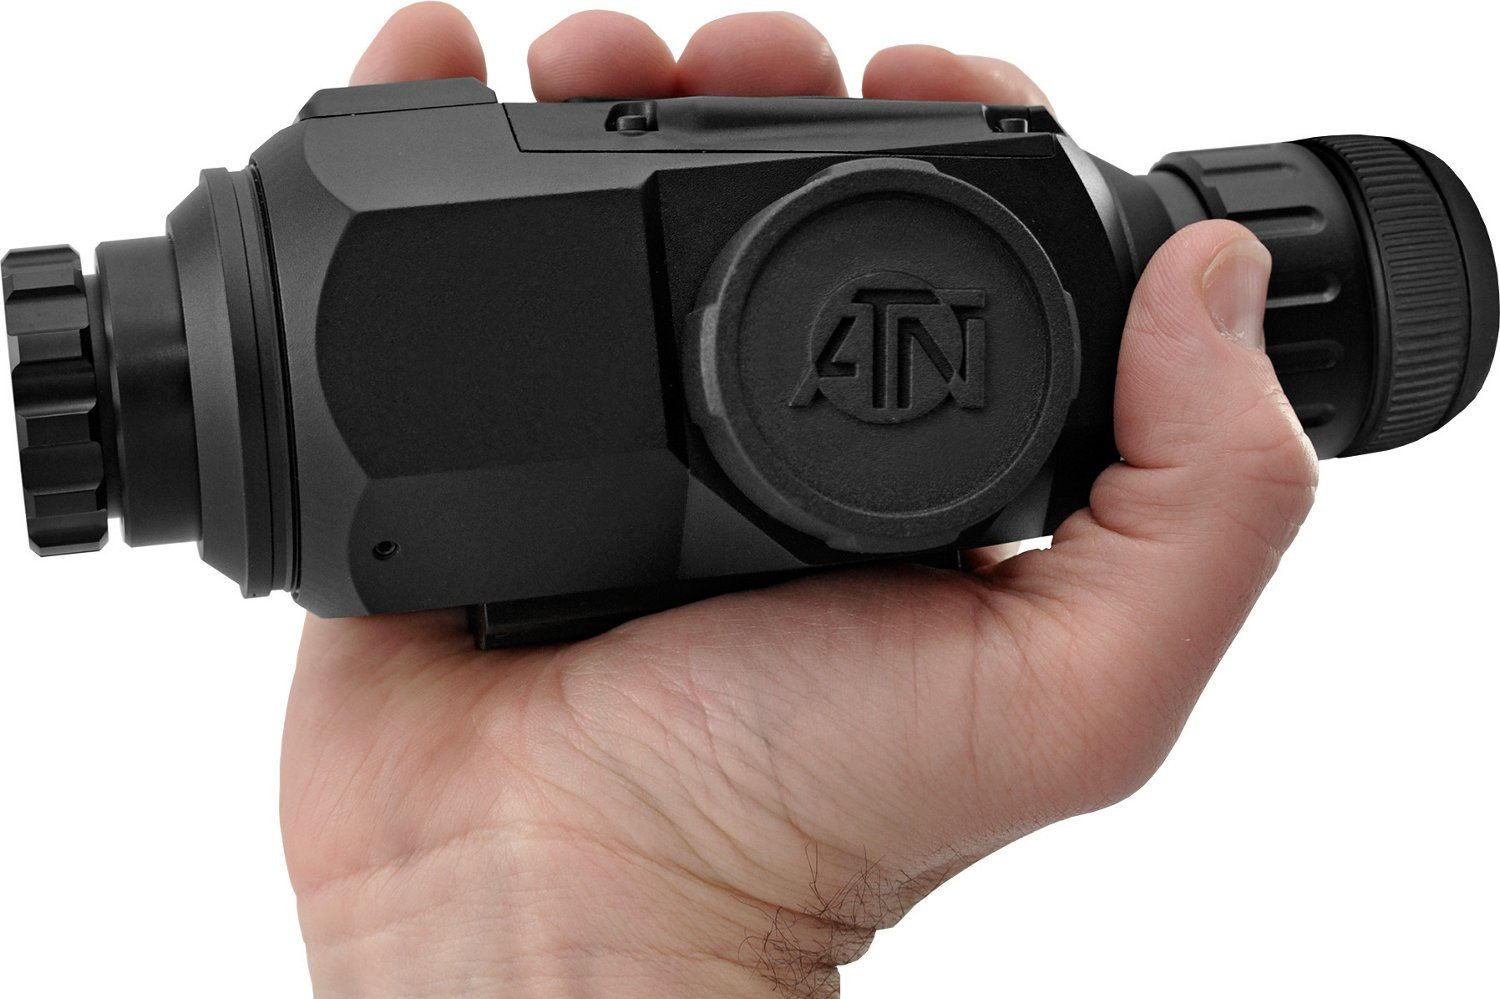 ATN OTS Smart HD 1.25 - 5 x 19 Thermal Monocular - view number 2